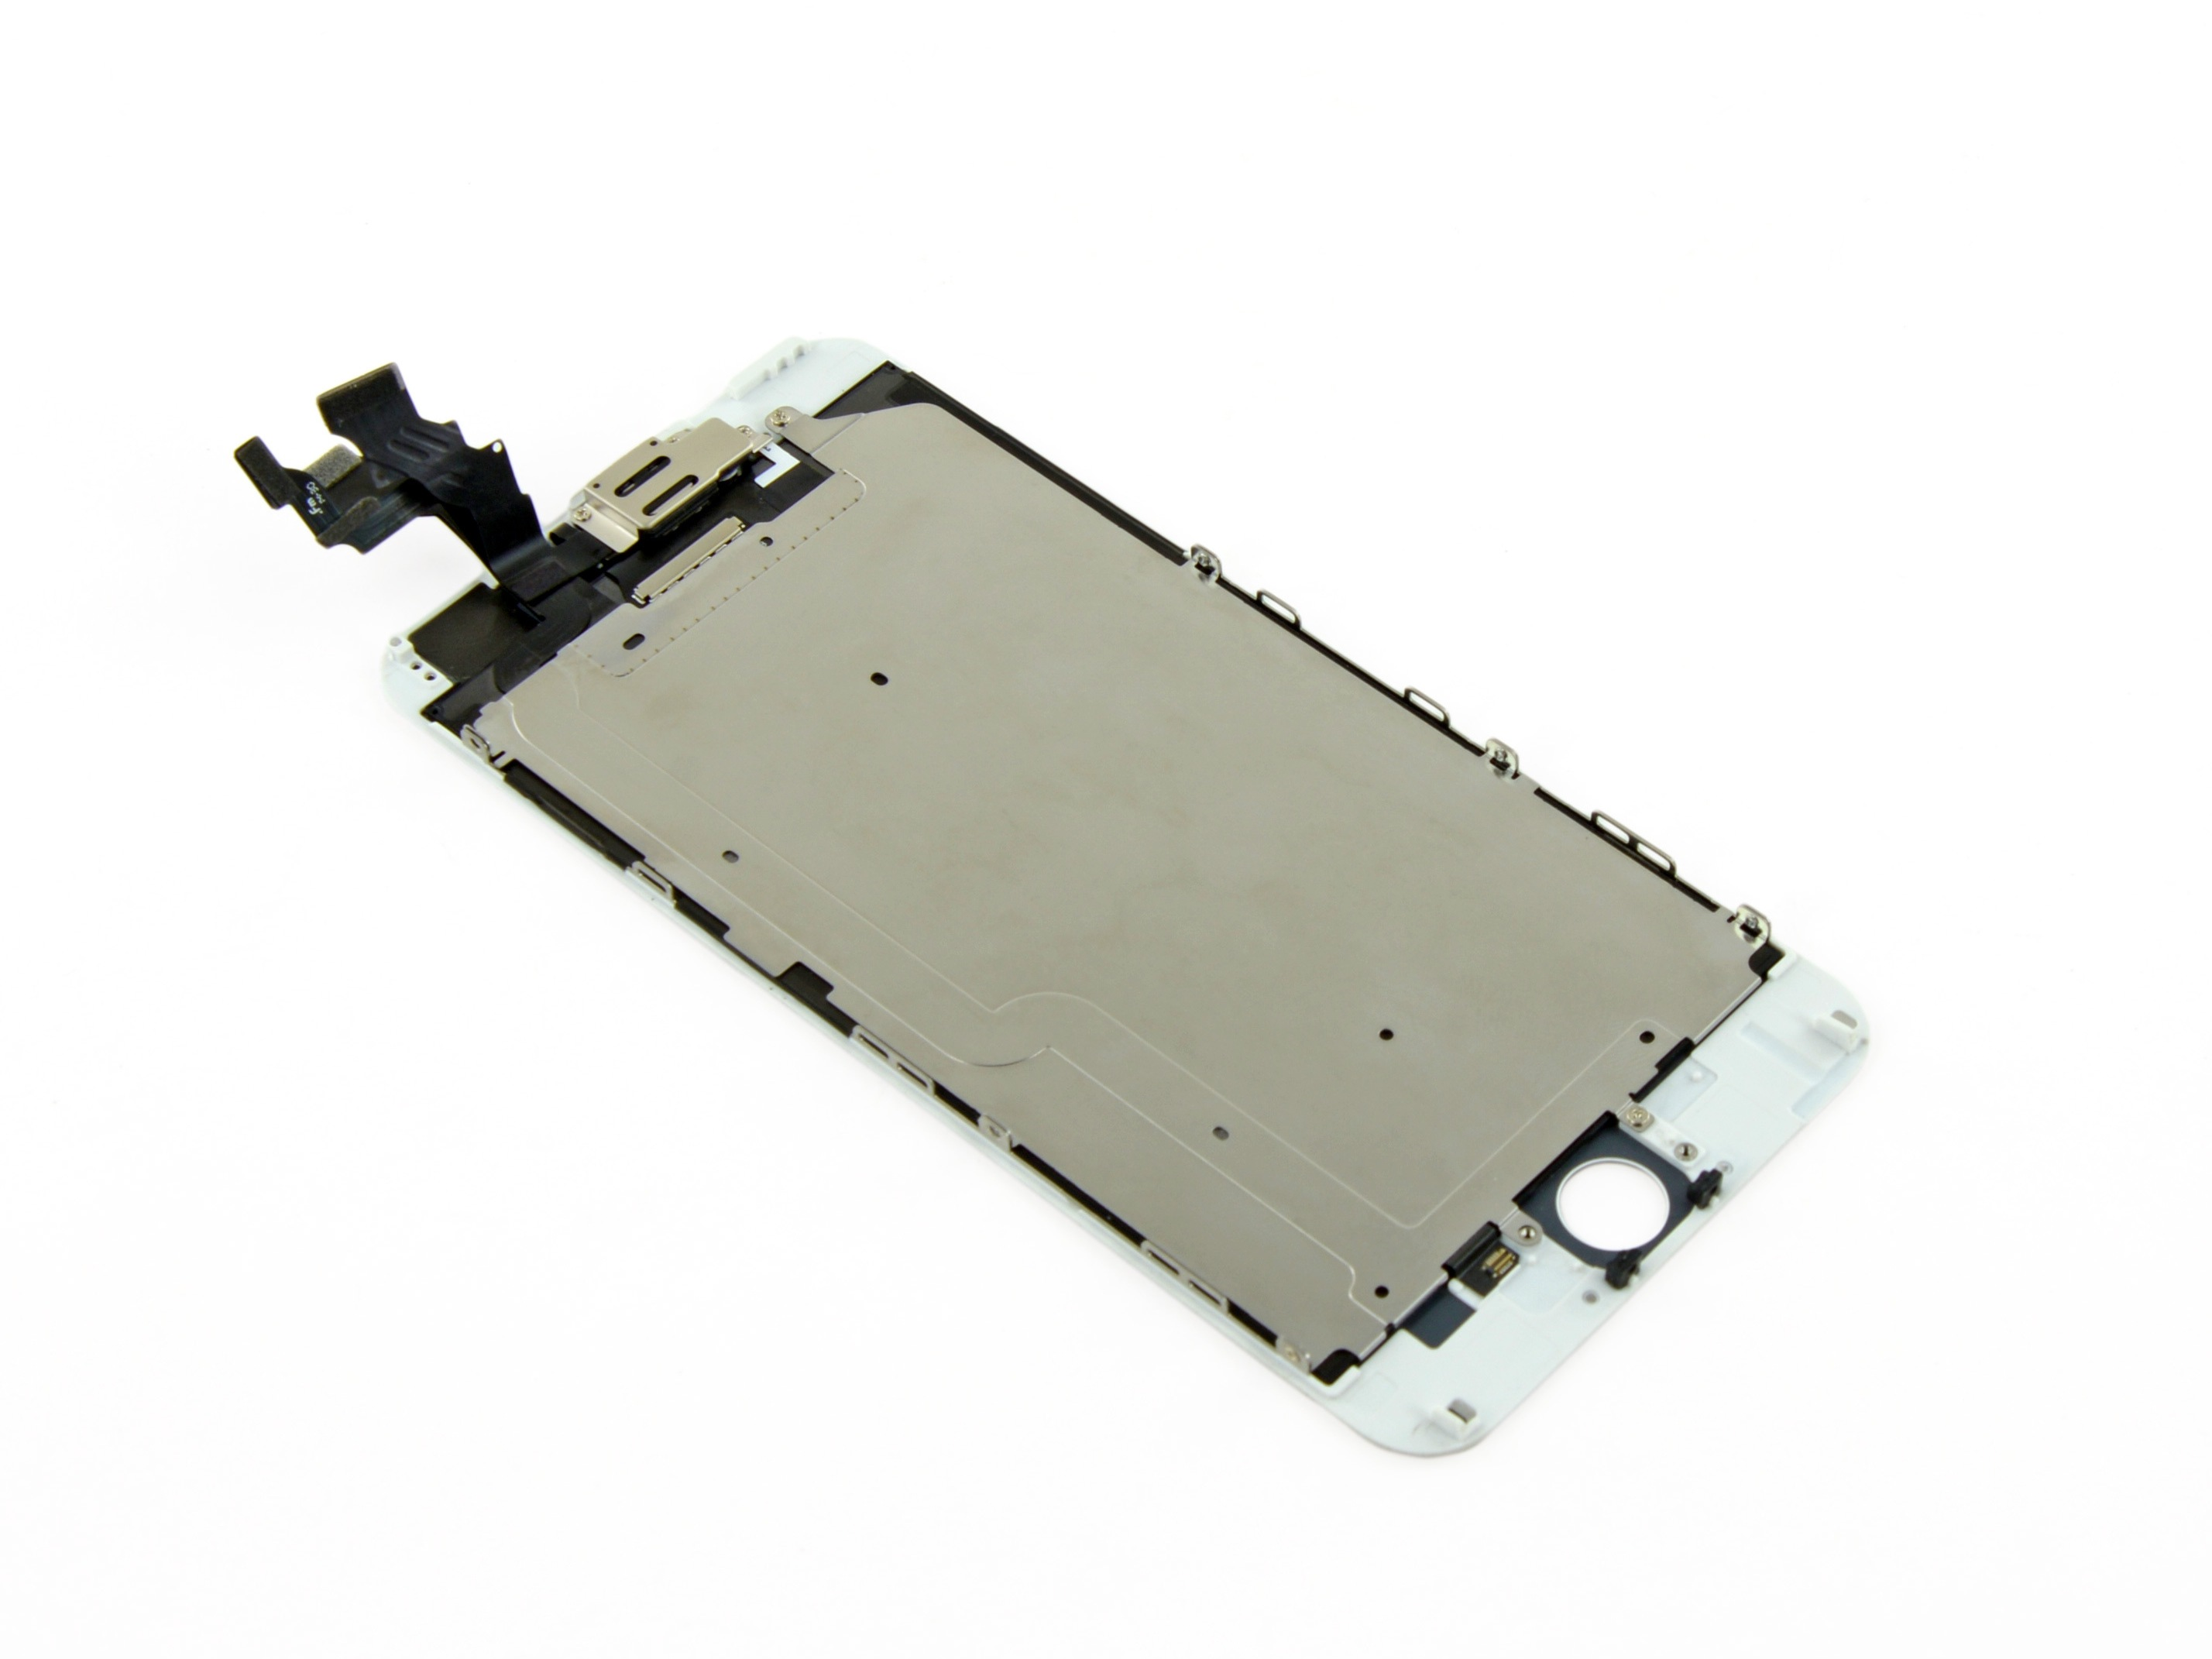 Iphone 6 Plus Display Assembly Replacement Ifixit Repair Guide Hair Dryer Wiring Diagram